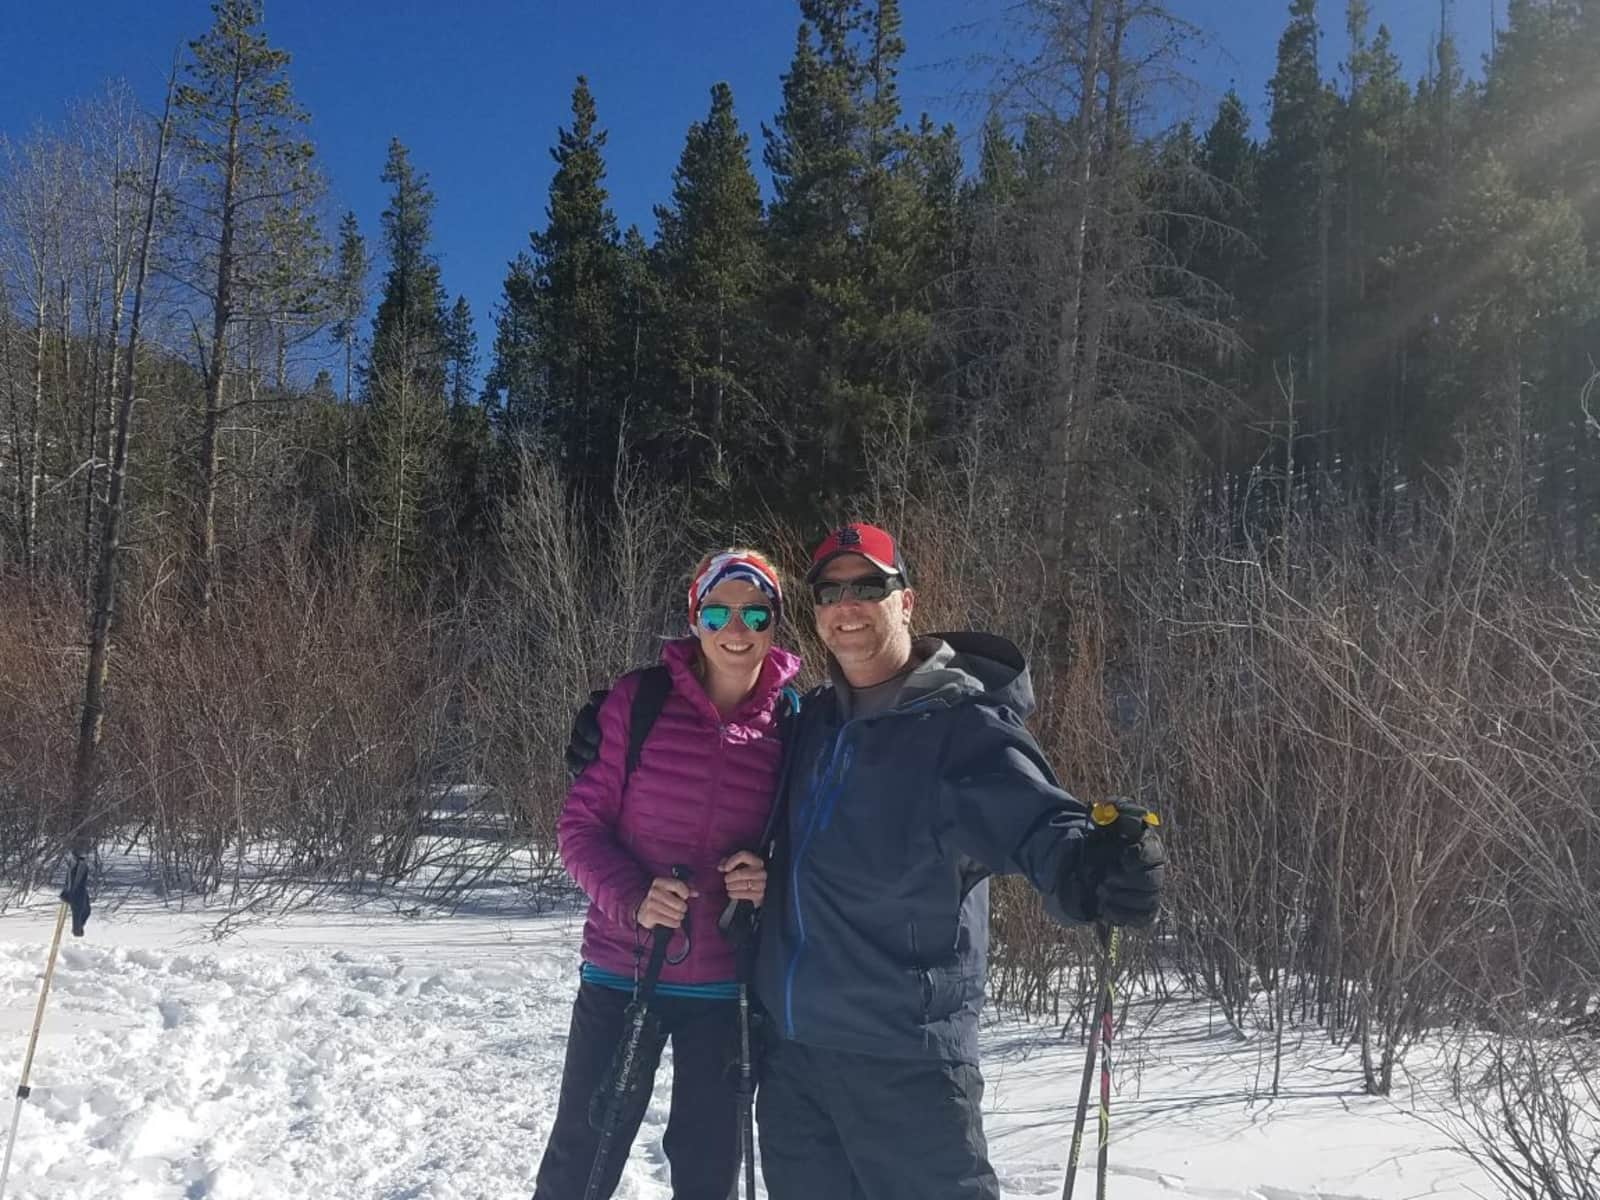 Leanne & Richie from Silverthorne, Colorado, United States